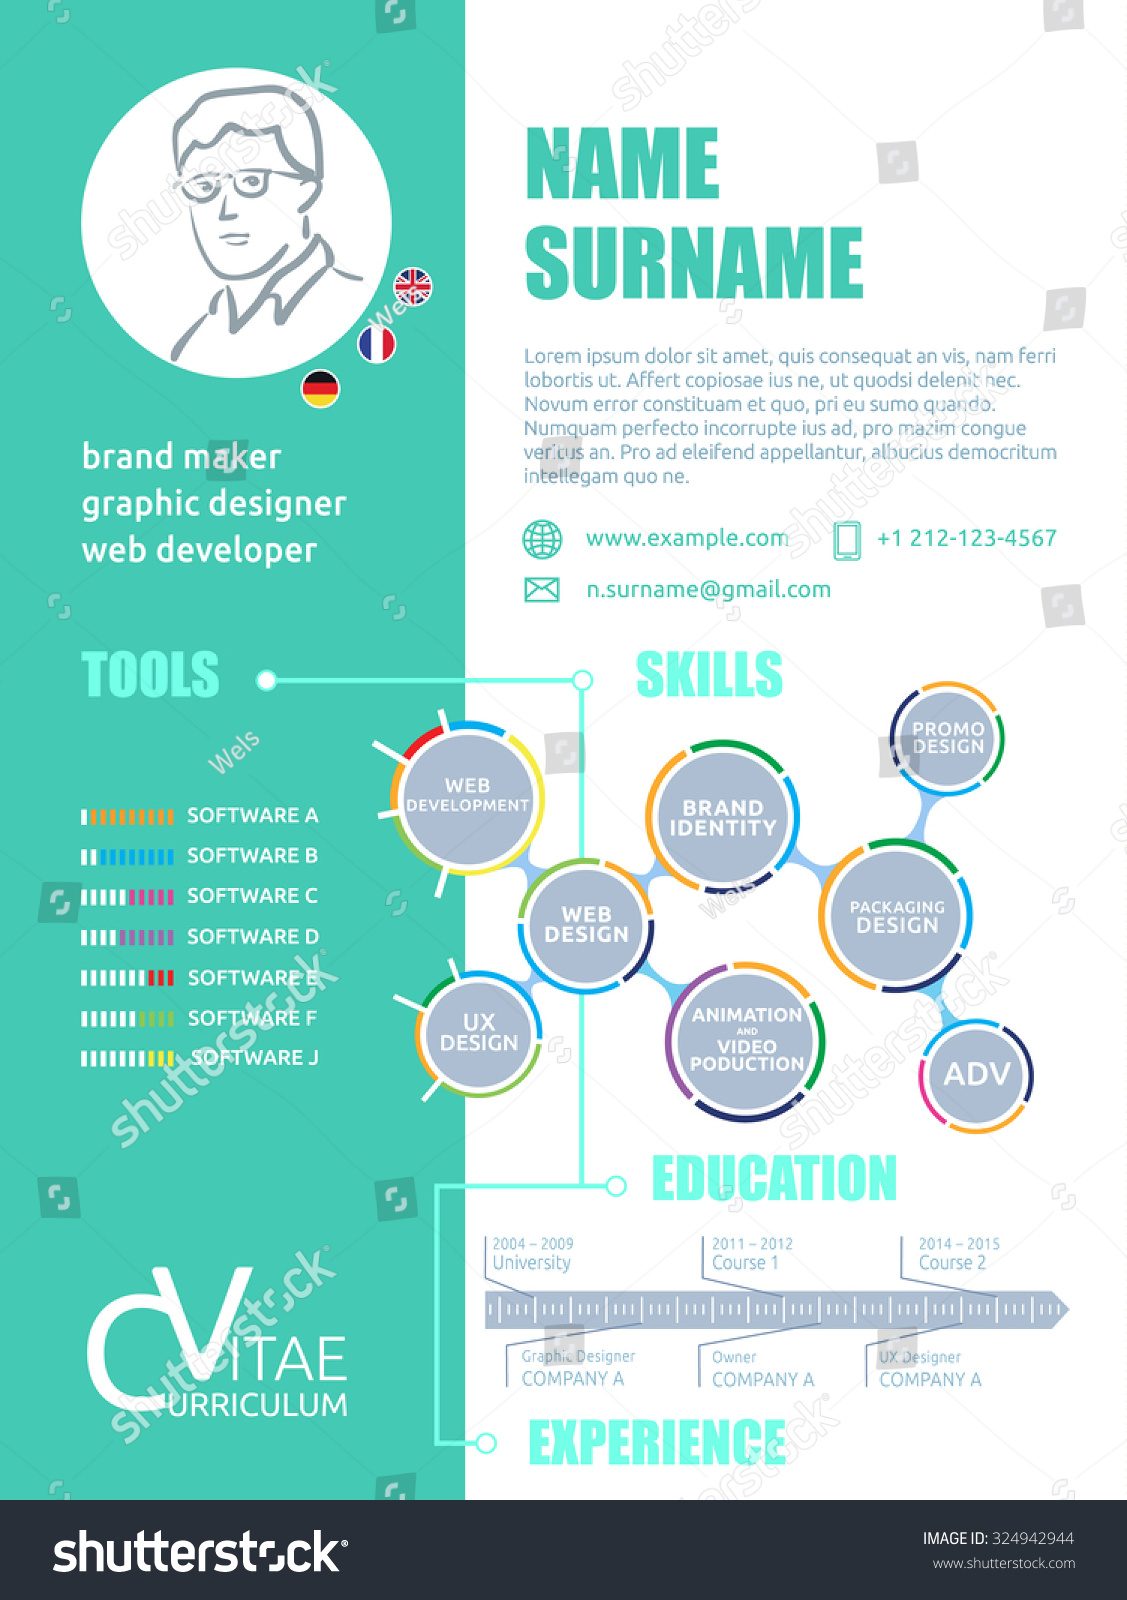 cv brief resume cv template graphic stock vector  cv brief resume cv template for graphic designer modern infographic include sur